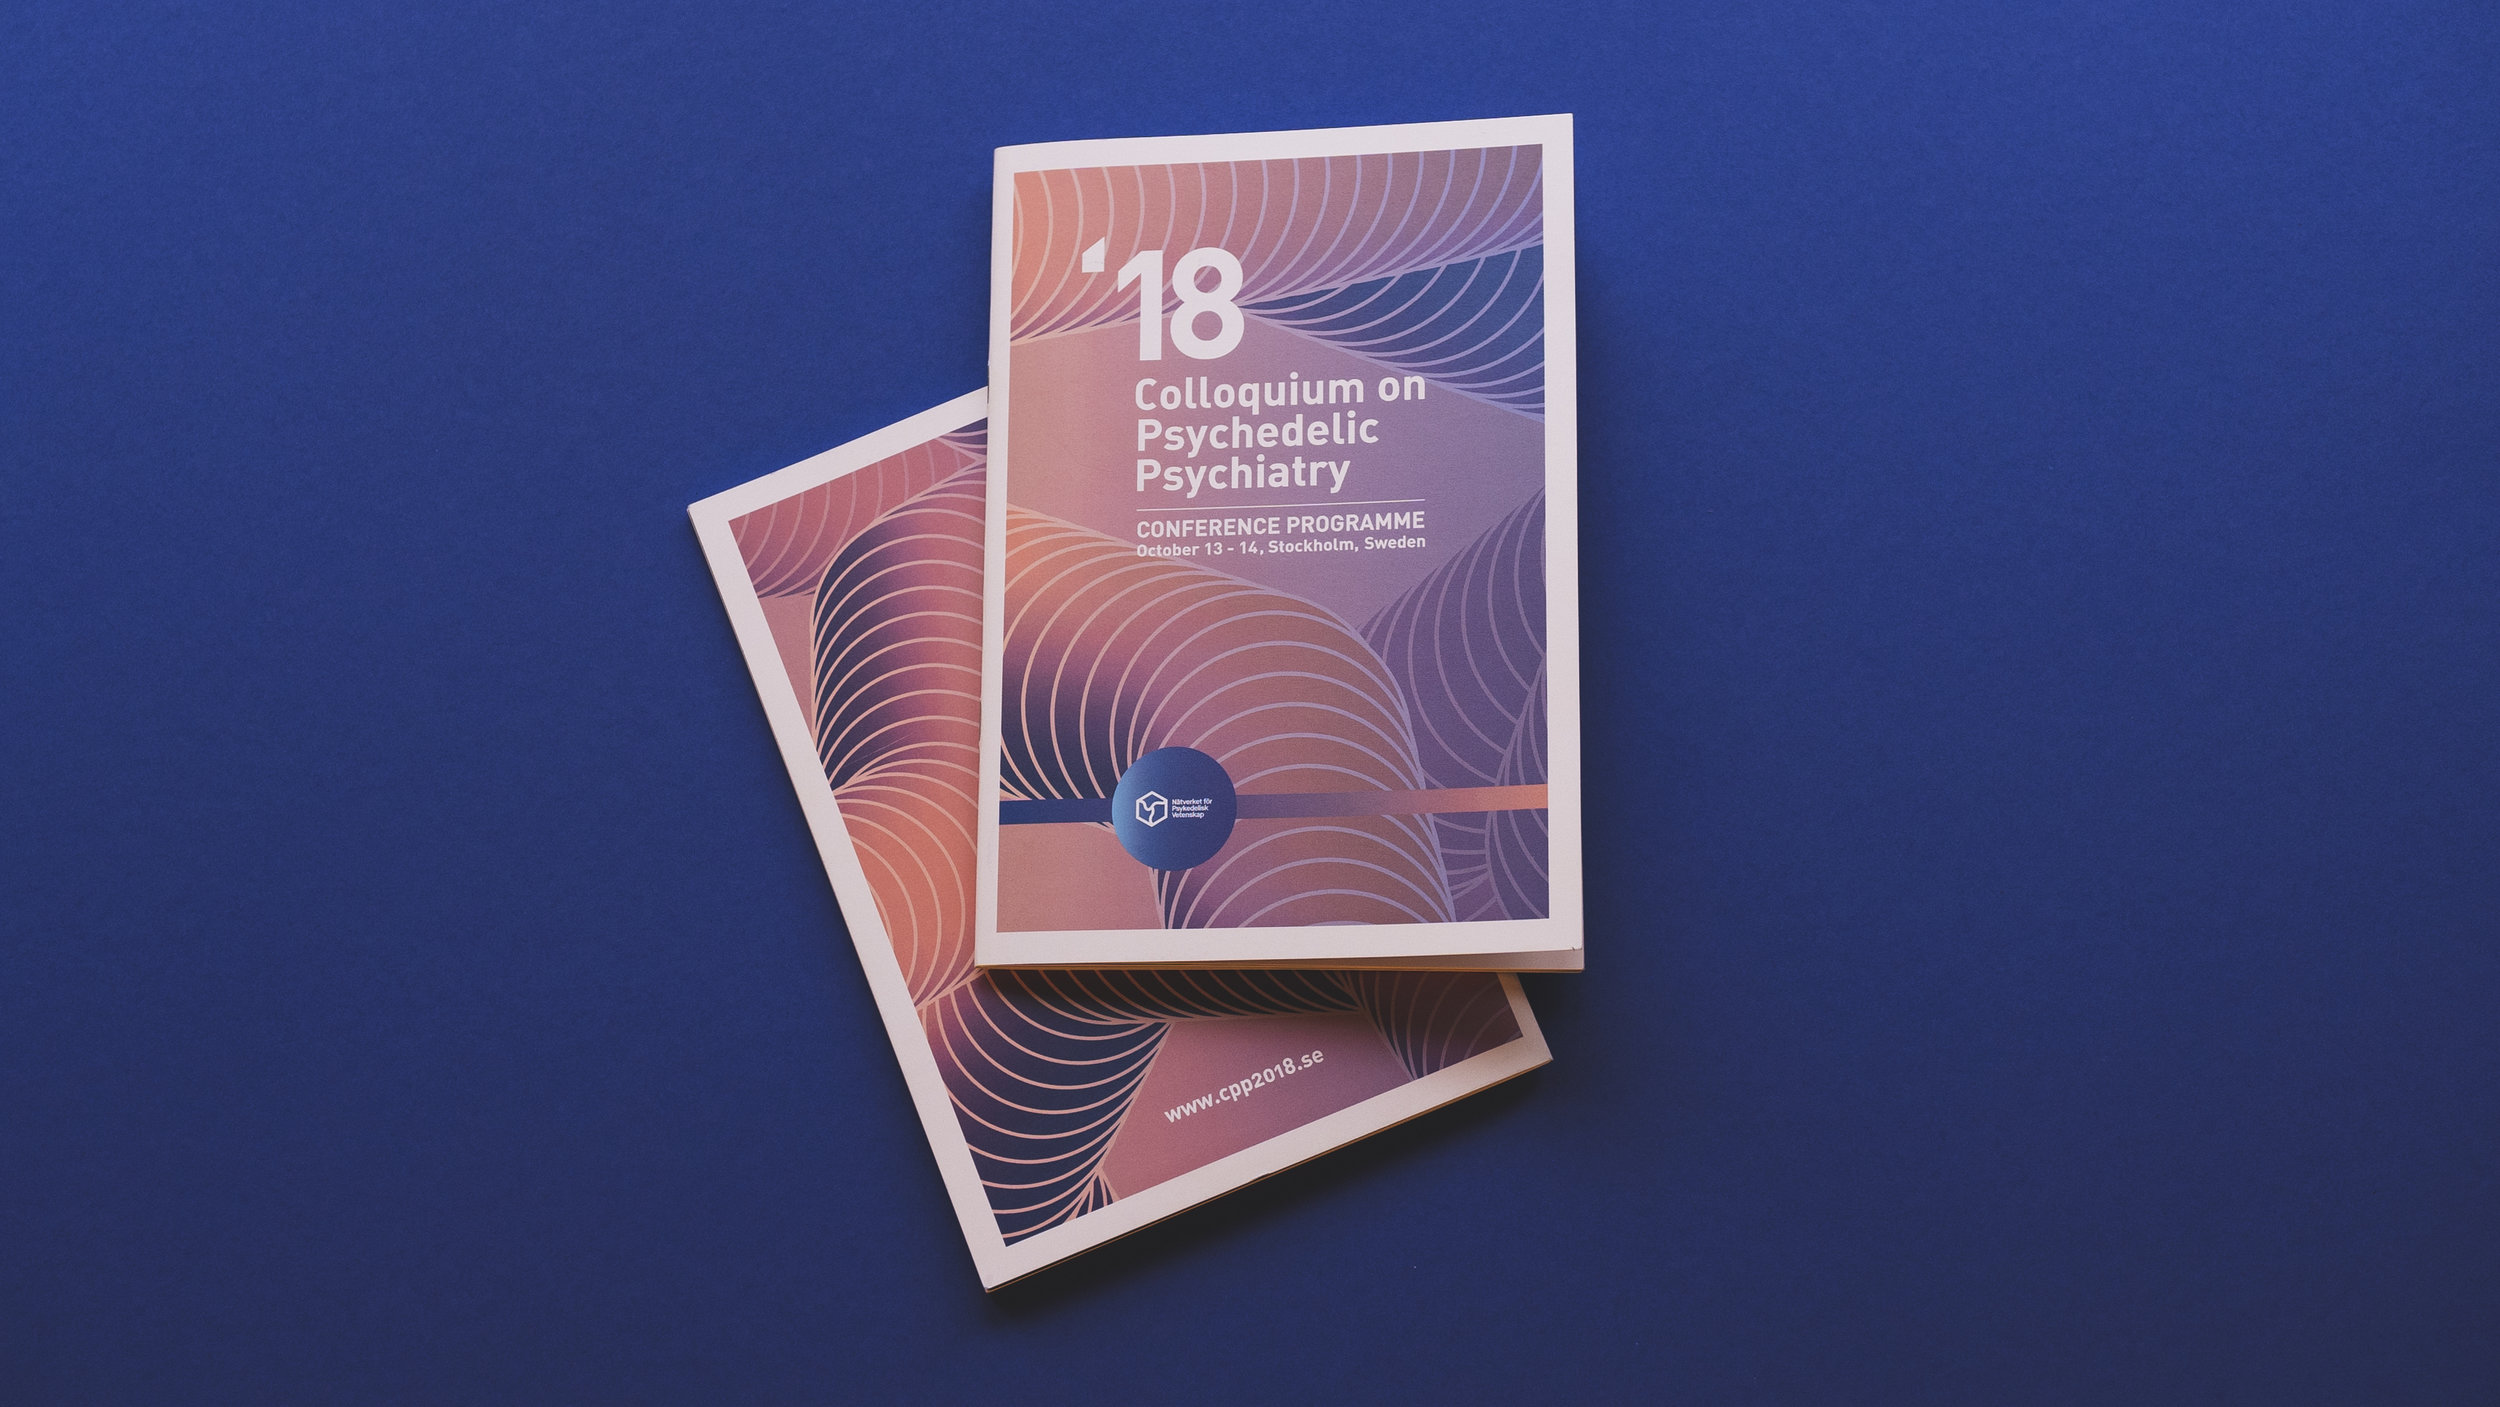 Logo, brand guidelines, graphic design, web and more, for the first ever conference on Psycedelic Psyciatry in Sweden. for more info:  http://www.cpp2018.se  and  http://www.psykedeliskvetenskap.org/  Made by Flykten från Verkligheten Outdoor productions.